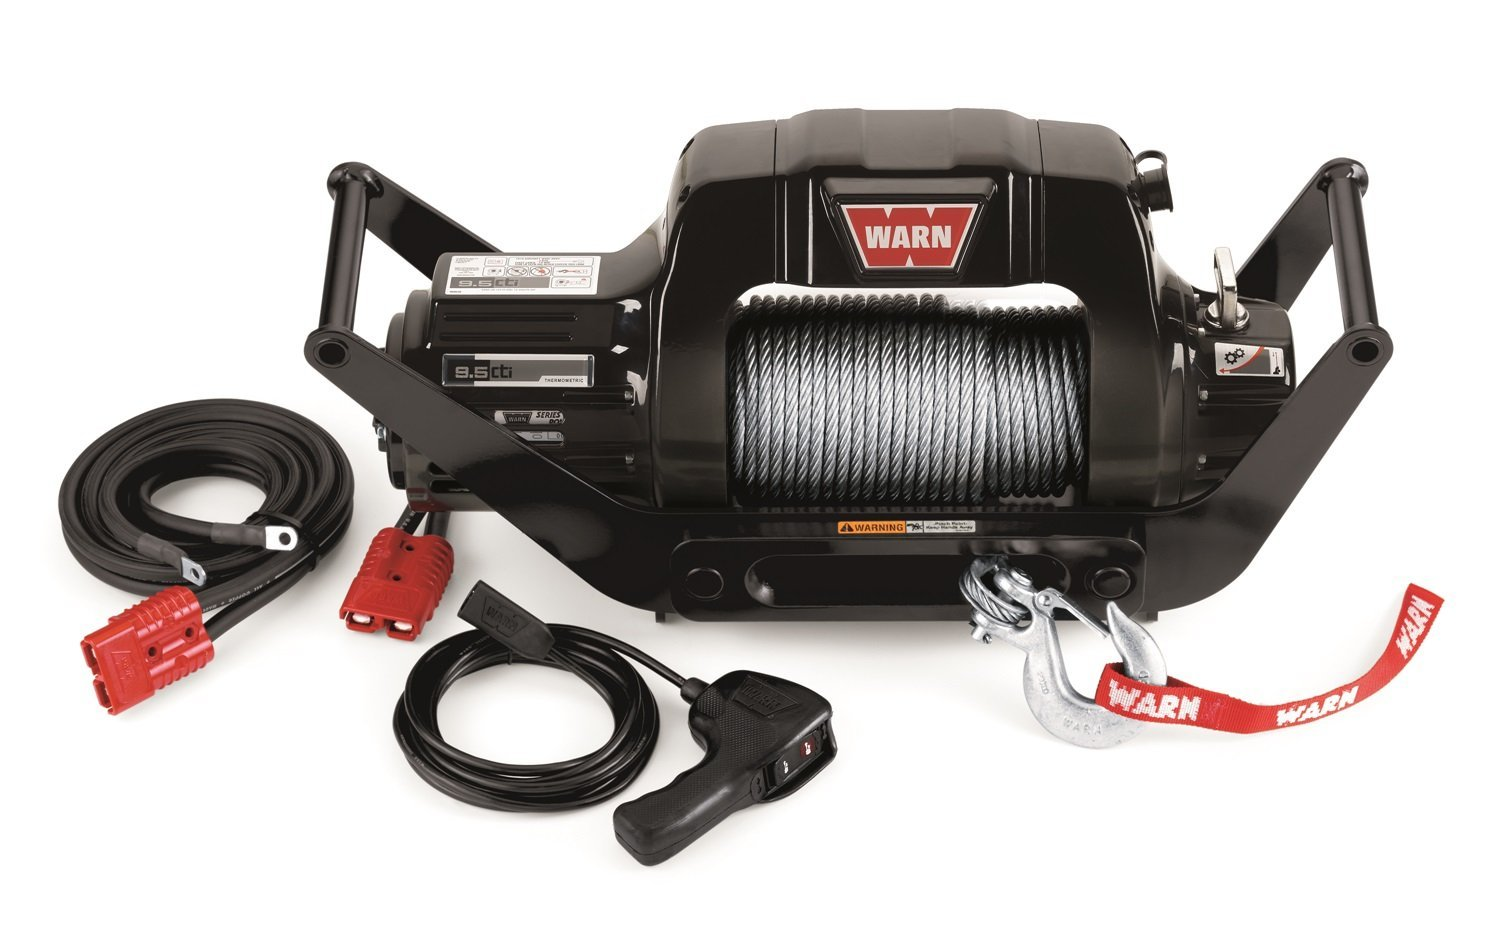 Warn Zeon Corded Winch Kit